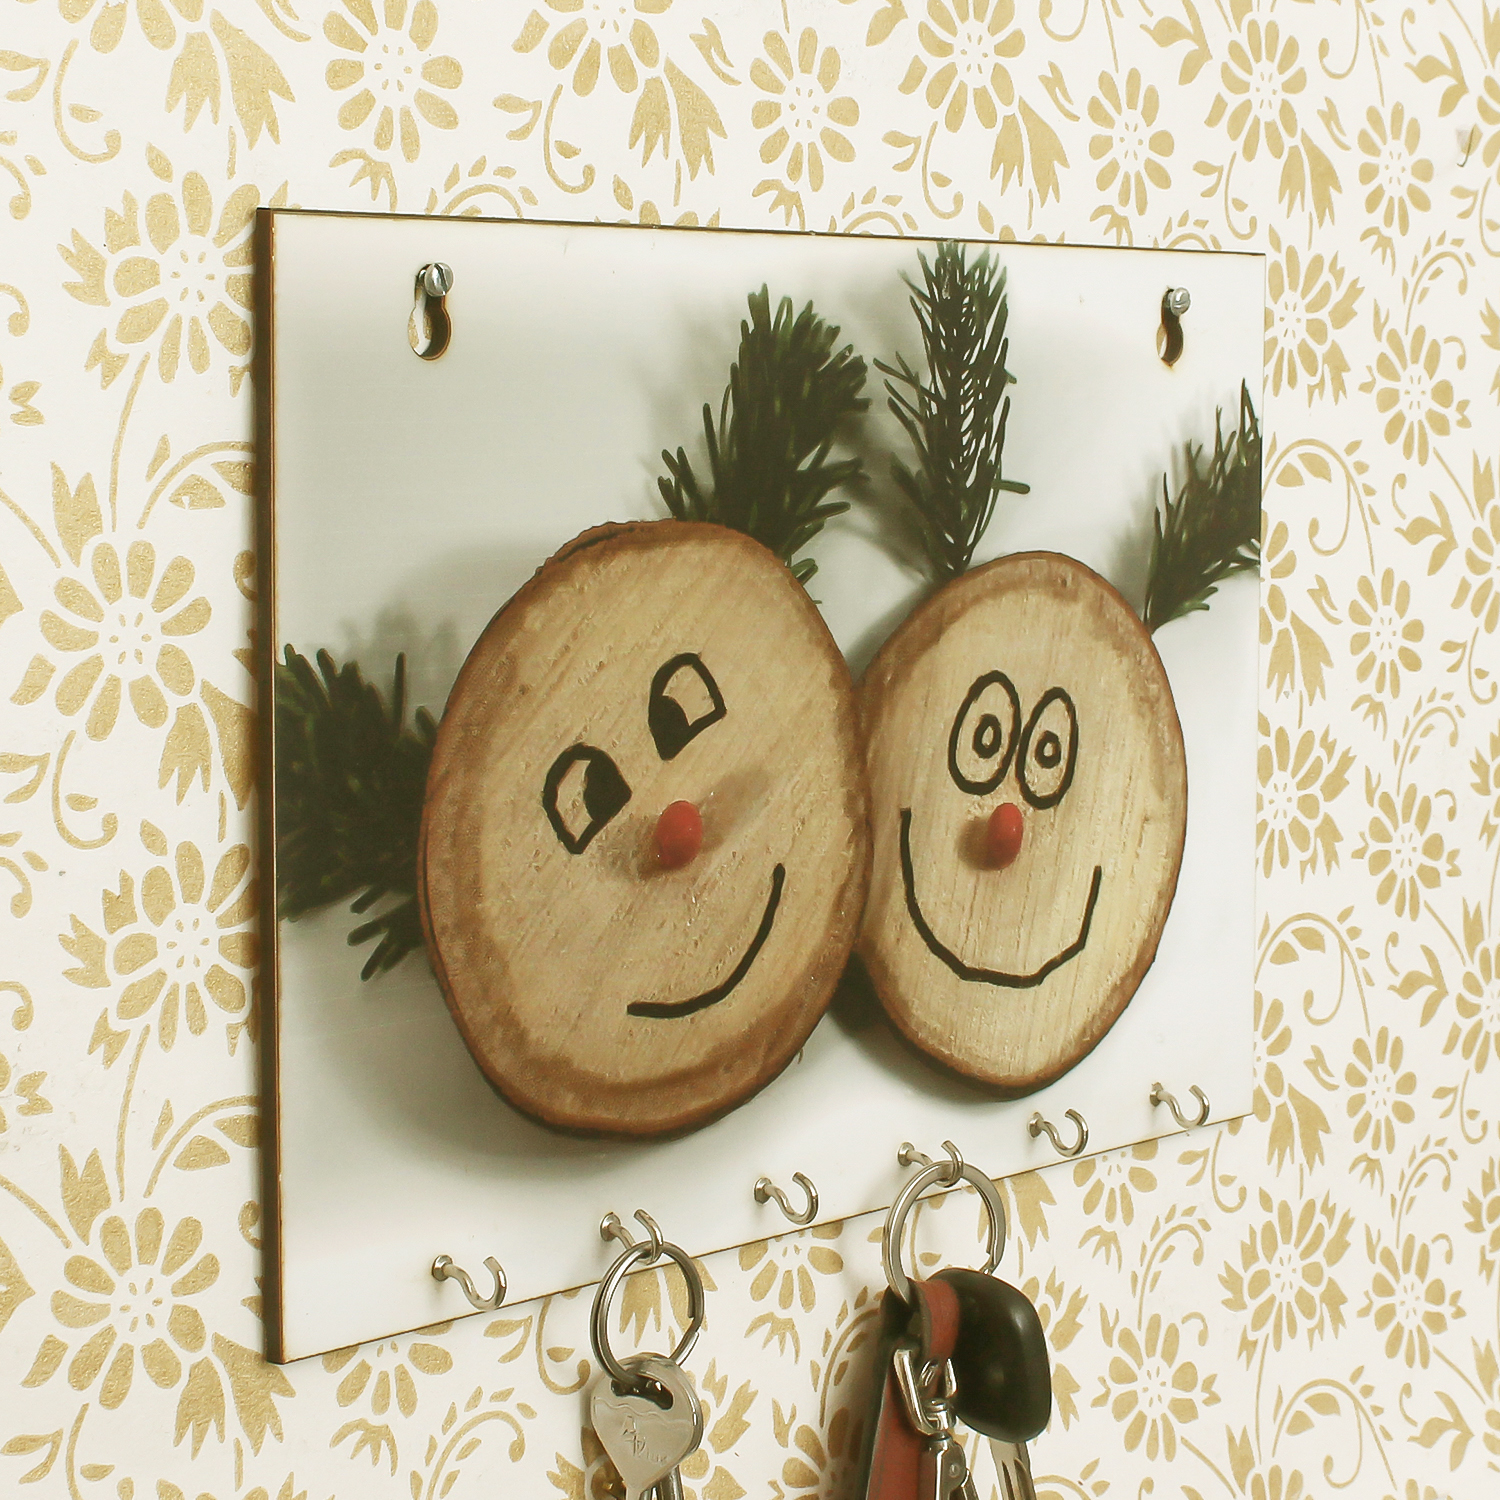 Smilie Theme Wooden Key Holder with 6 Hooks Indian Home Decor